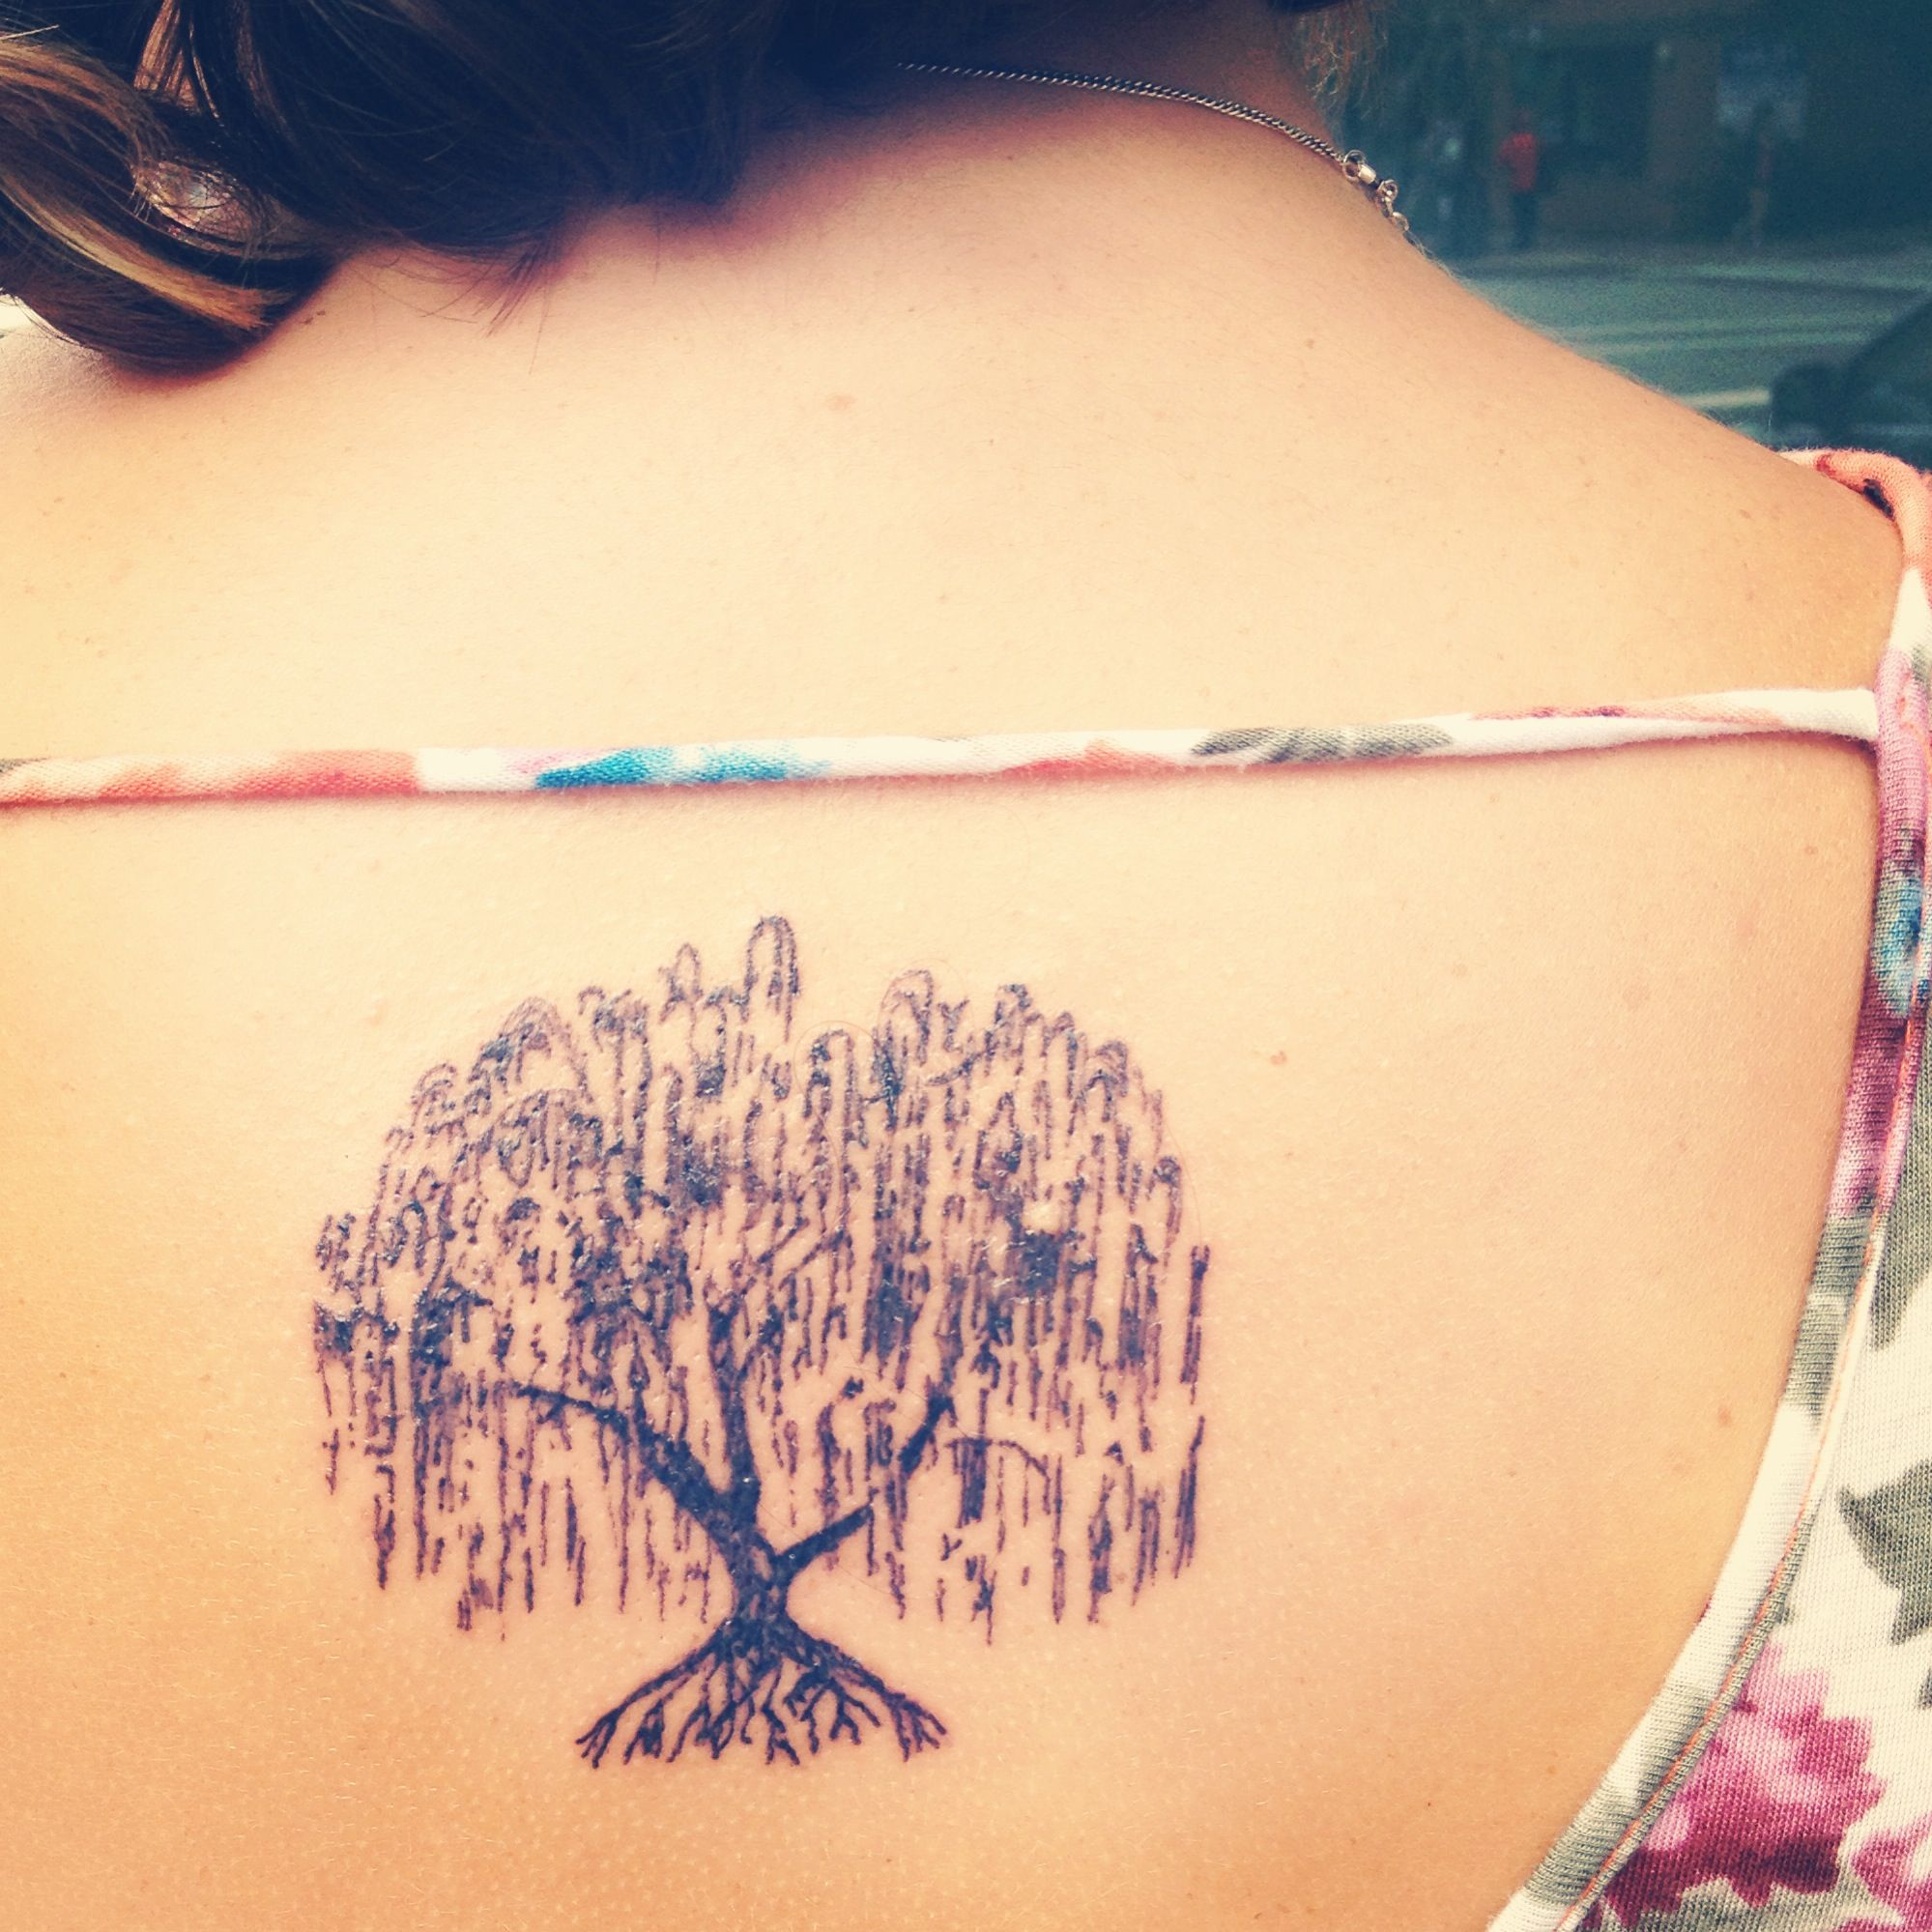 My new weeping willow tree tattoo! Love the sketch style